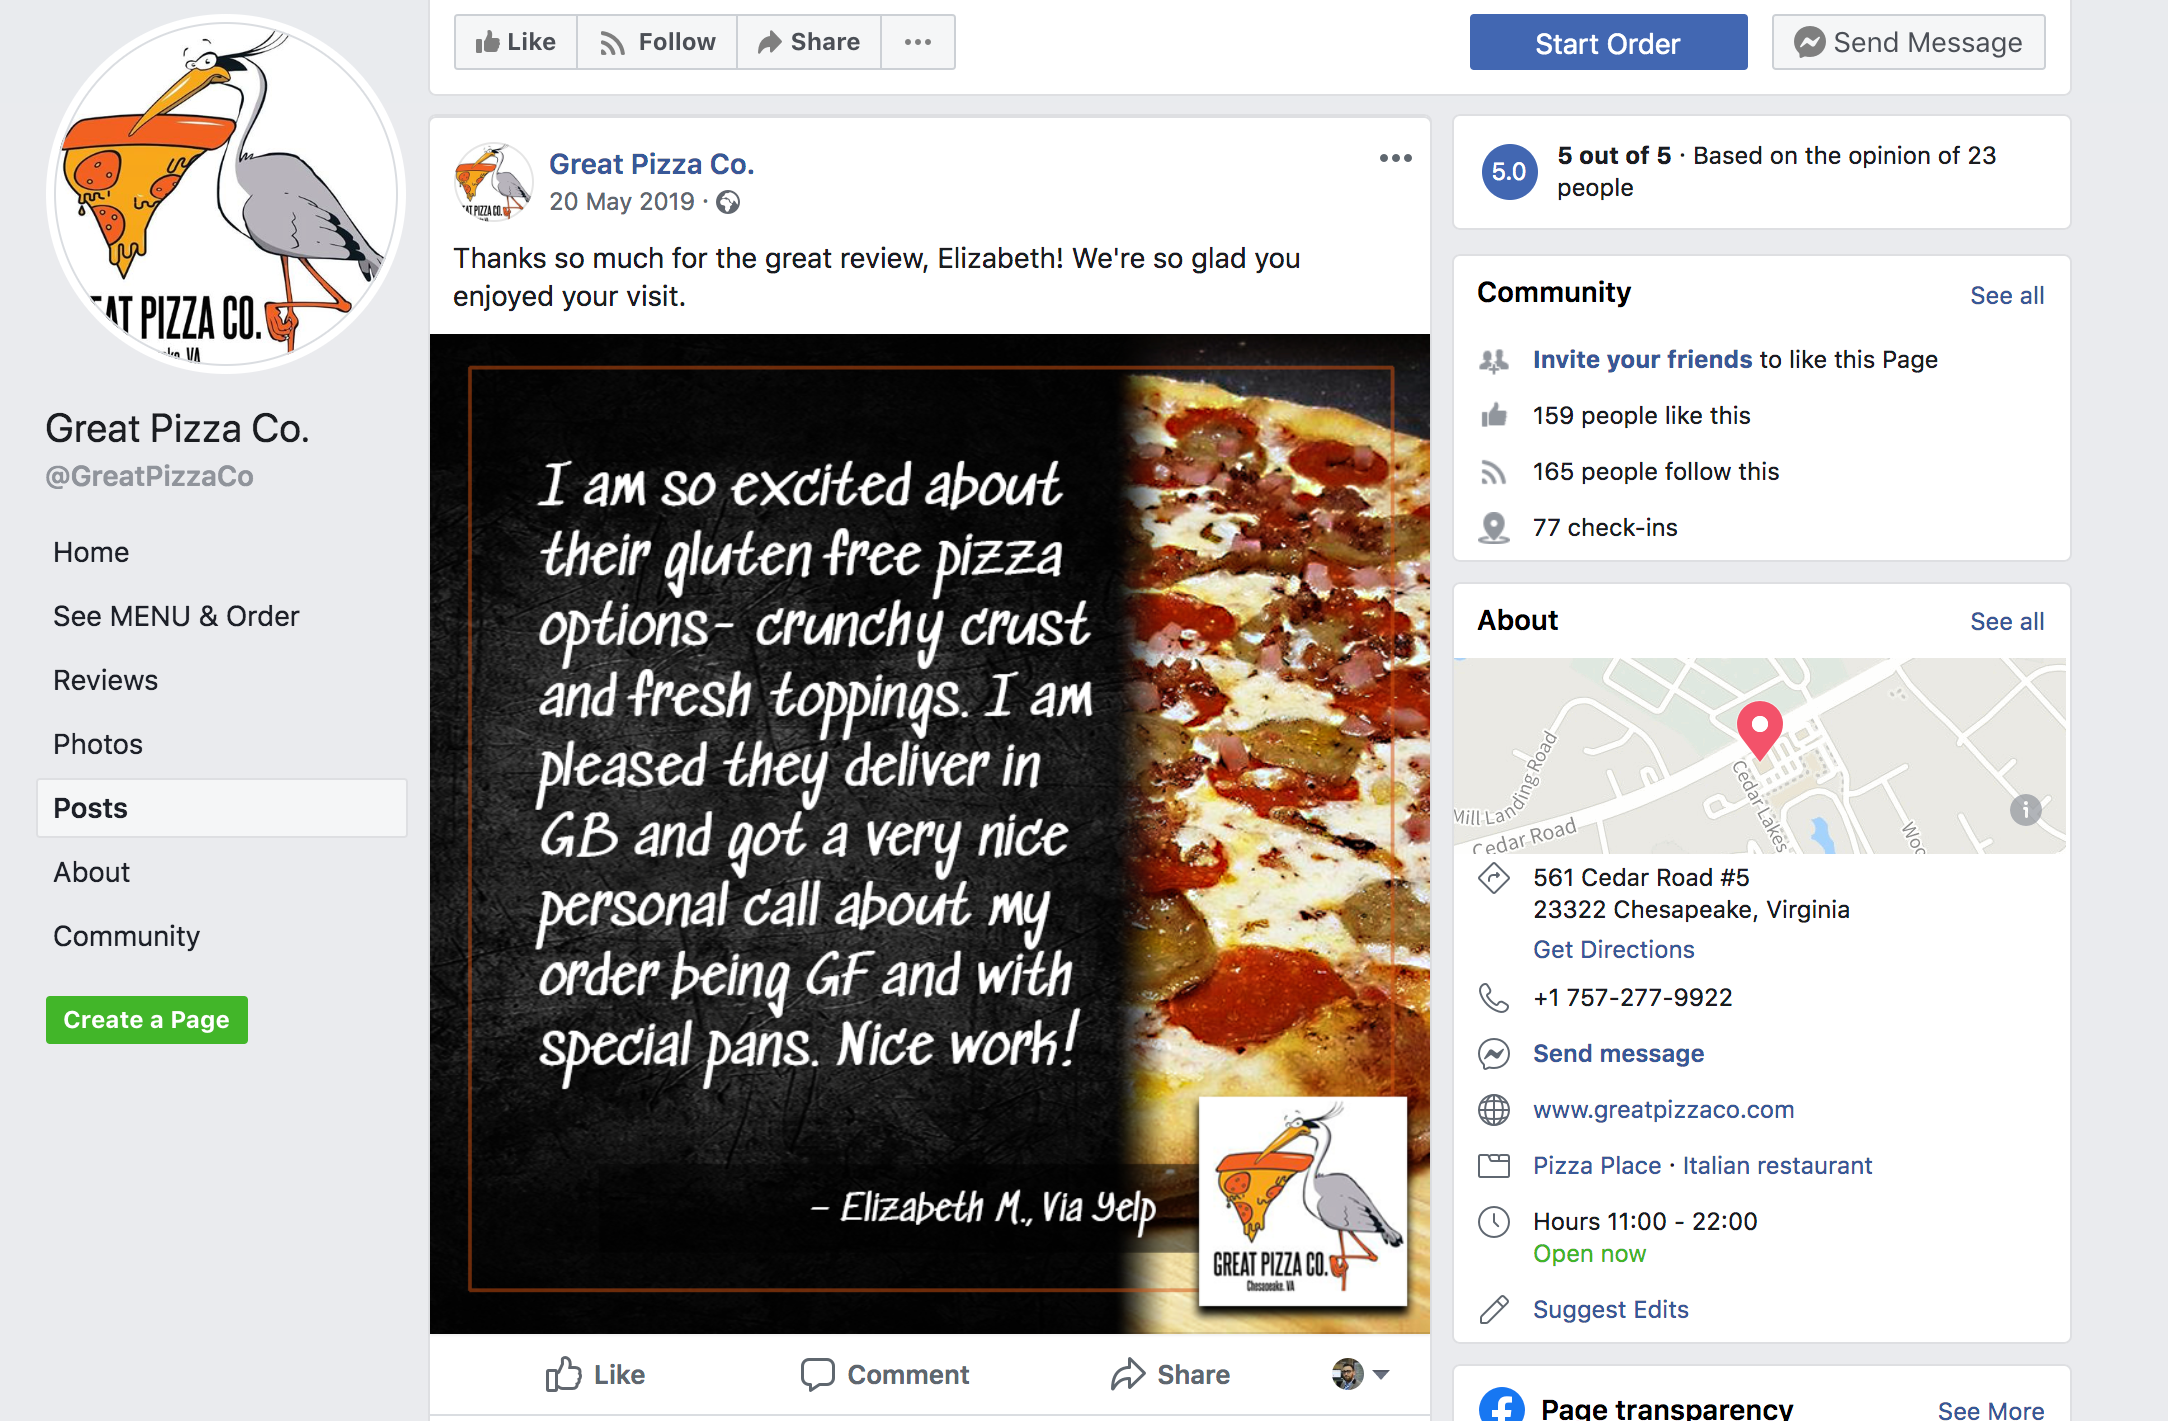 Establish if the review should be shared on social media